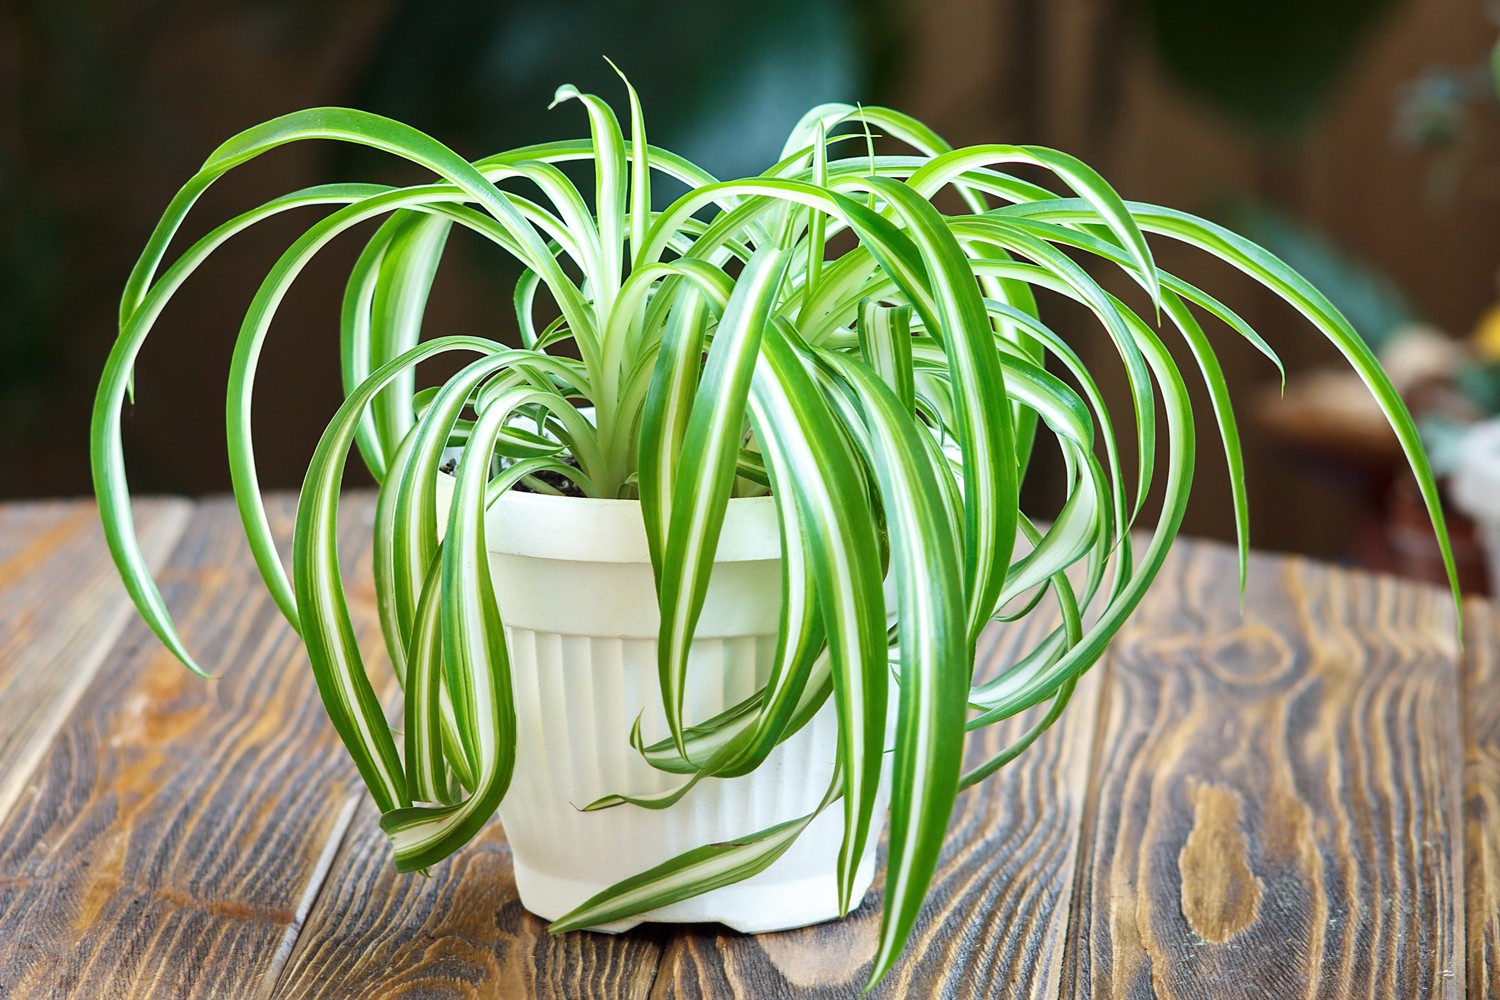 Plants safe for pets cats and dogs - spider plant